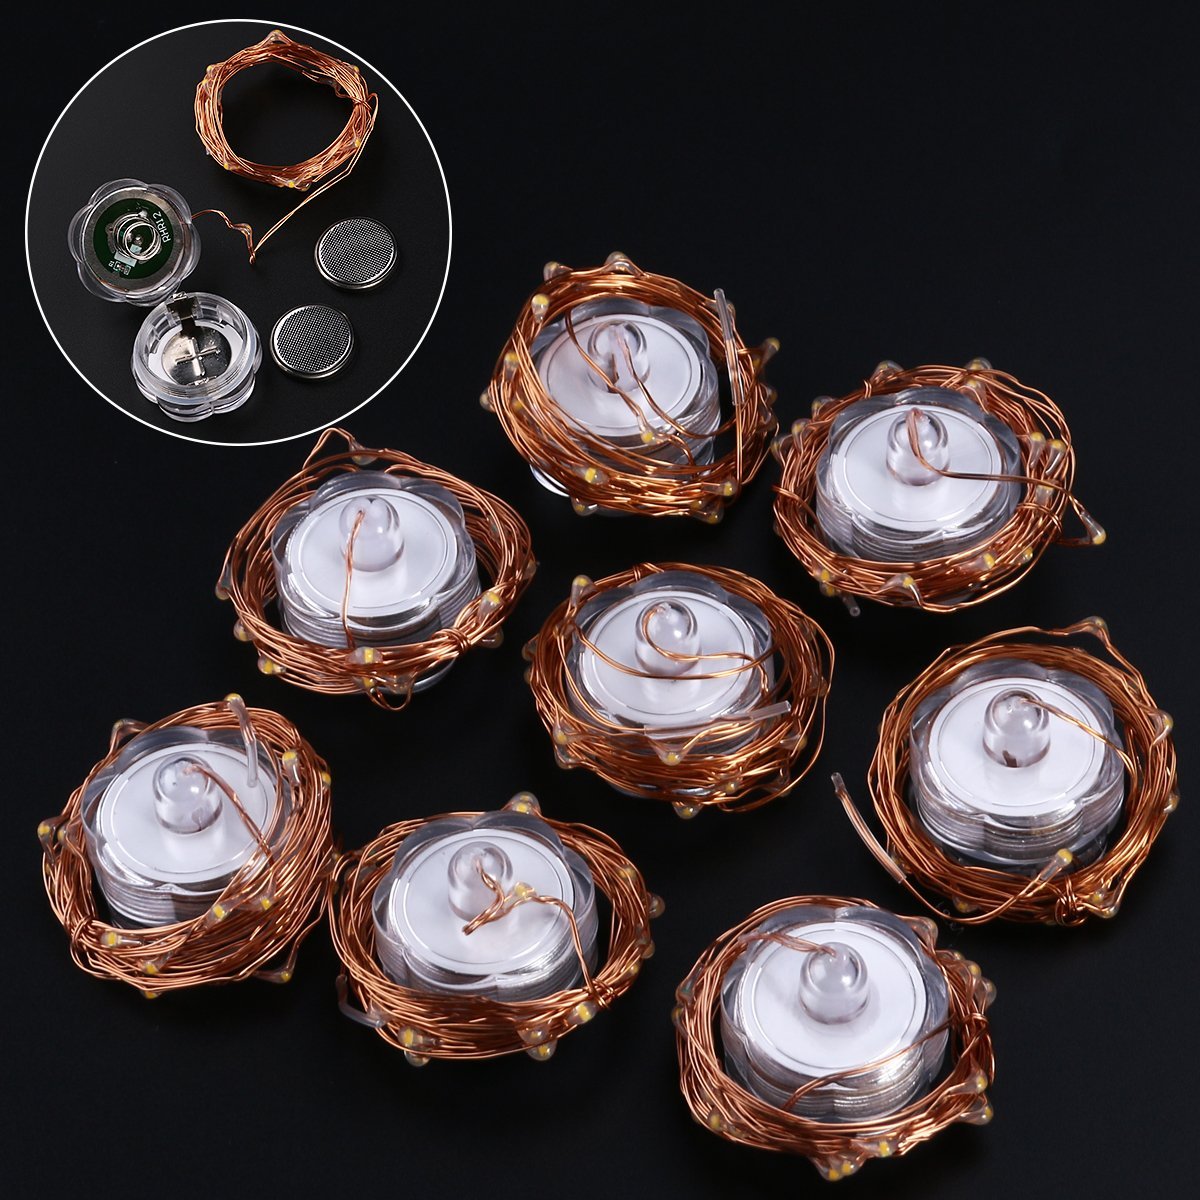 LED Starry String Lights, 8PCS 6.5foot Warm White Copper Fairy Lights with 20 Micro LEDs, Waterproof, Battery Operated, for Wedding Parties Table Decoration by YUNLIGHTS (Image #8)